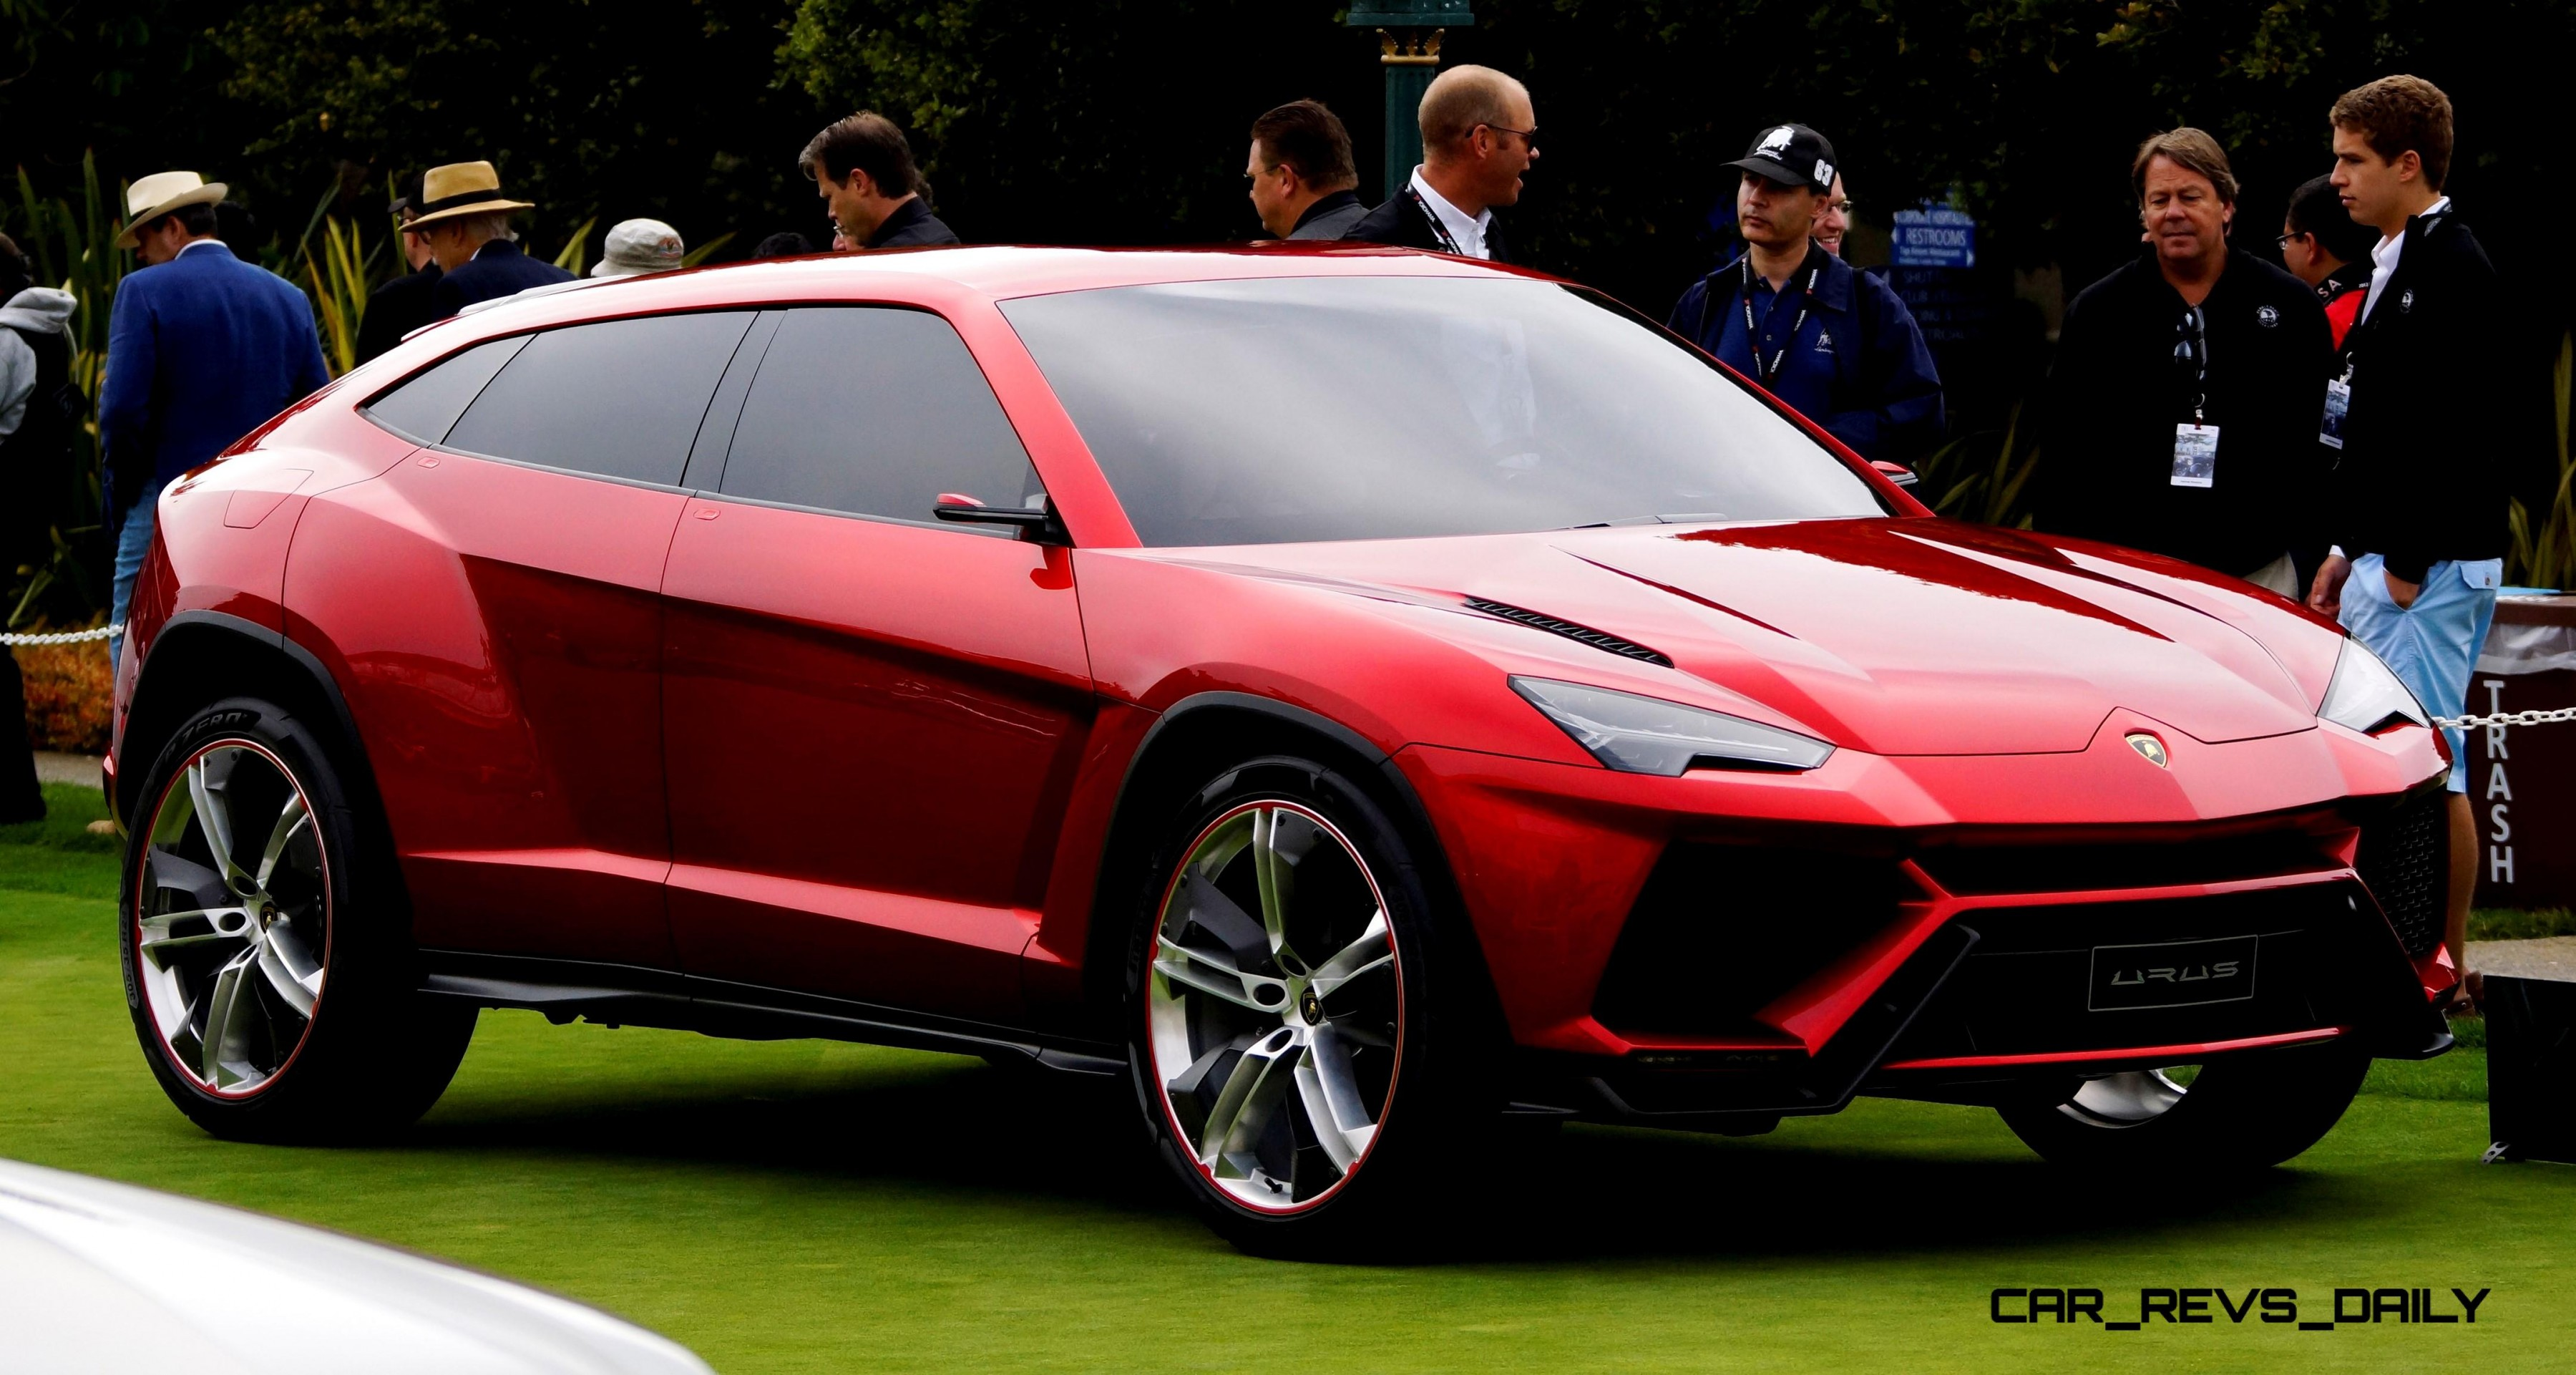 Lamborghini Paris Launch Rumored To Be AllNew 2016 URUS SuperSUV